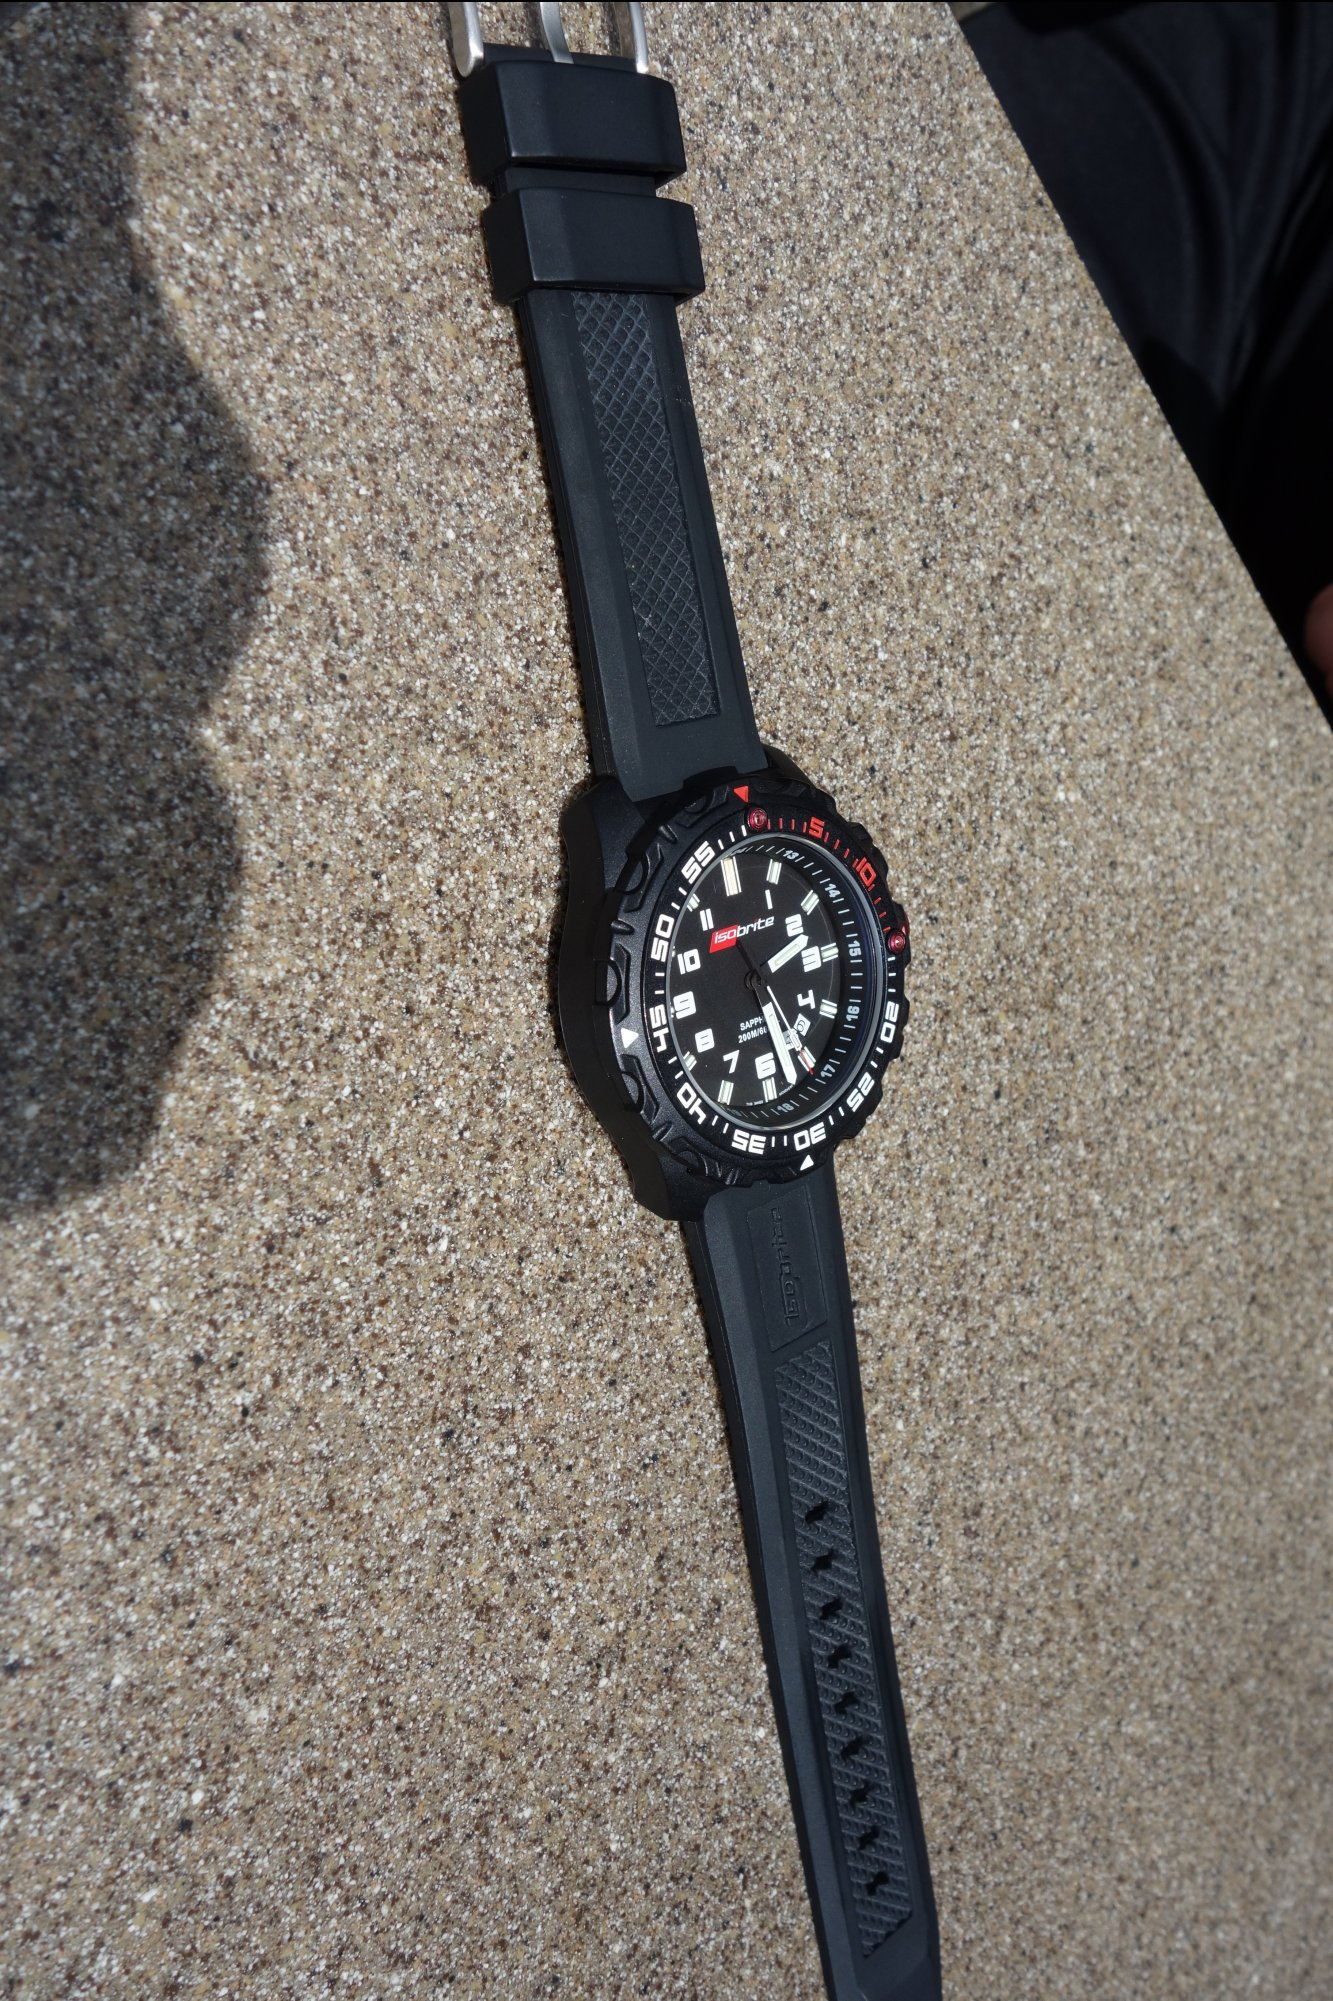 ArmourLite IsoBrite Tactical Watch Diving Watch T100 Tritium H3 Illumination Miami David Crane DefenseReview.com DR 7 rotated right ArmourLite IsoBrite Hard Use Tactical Watch/Diving Watch with T100 Tritium Illumination for Military and Law Enforcement Tactical Operations, Maritime Operations and Civilian Tactical Shooting (Video!)